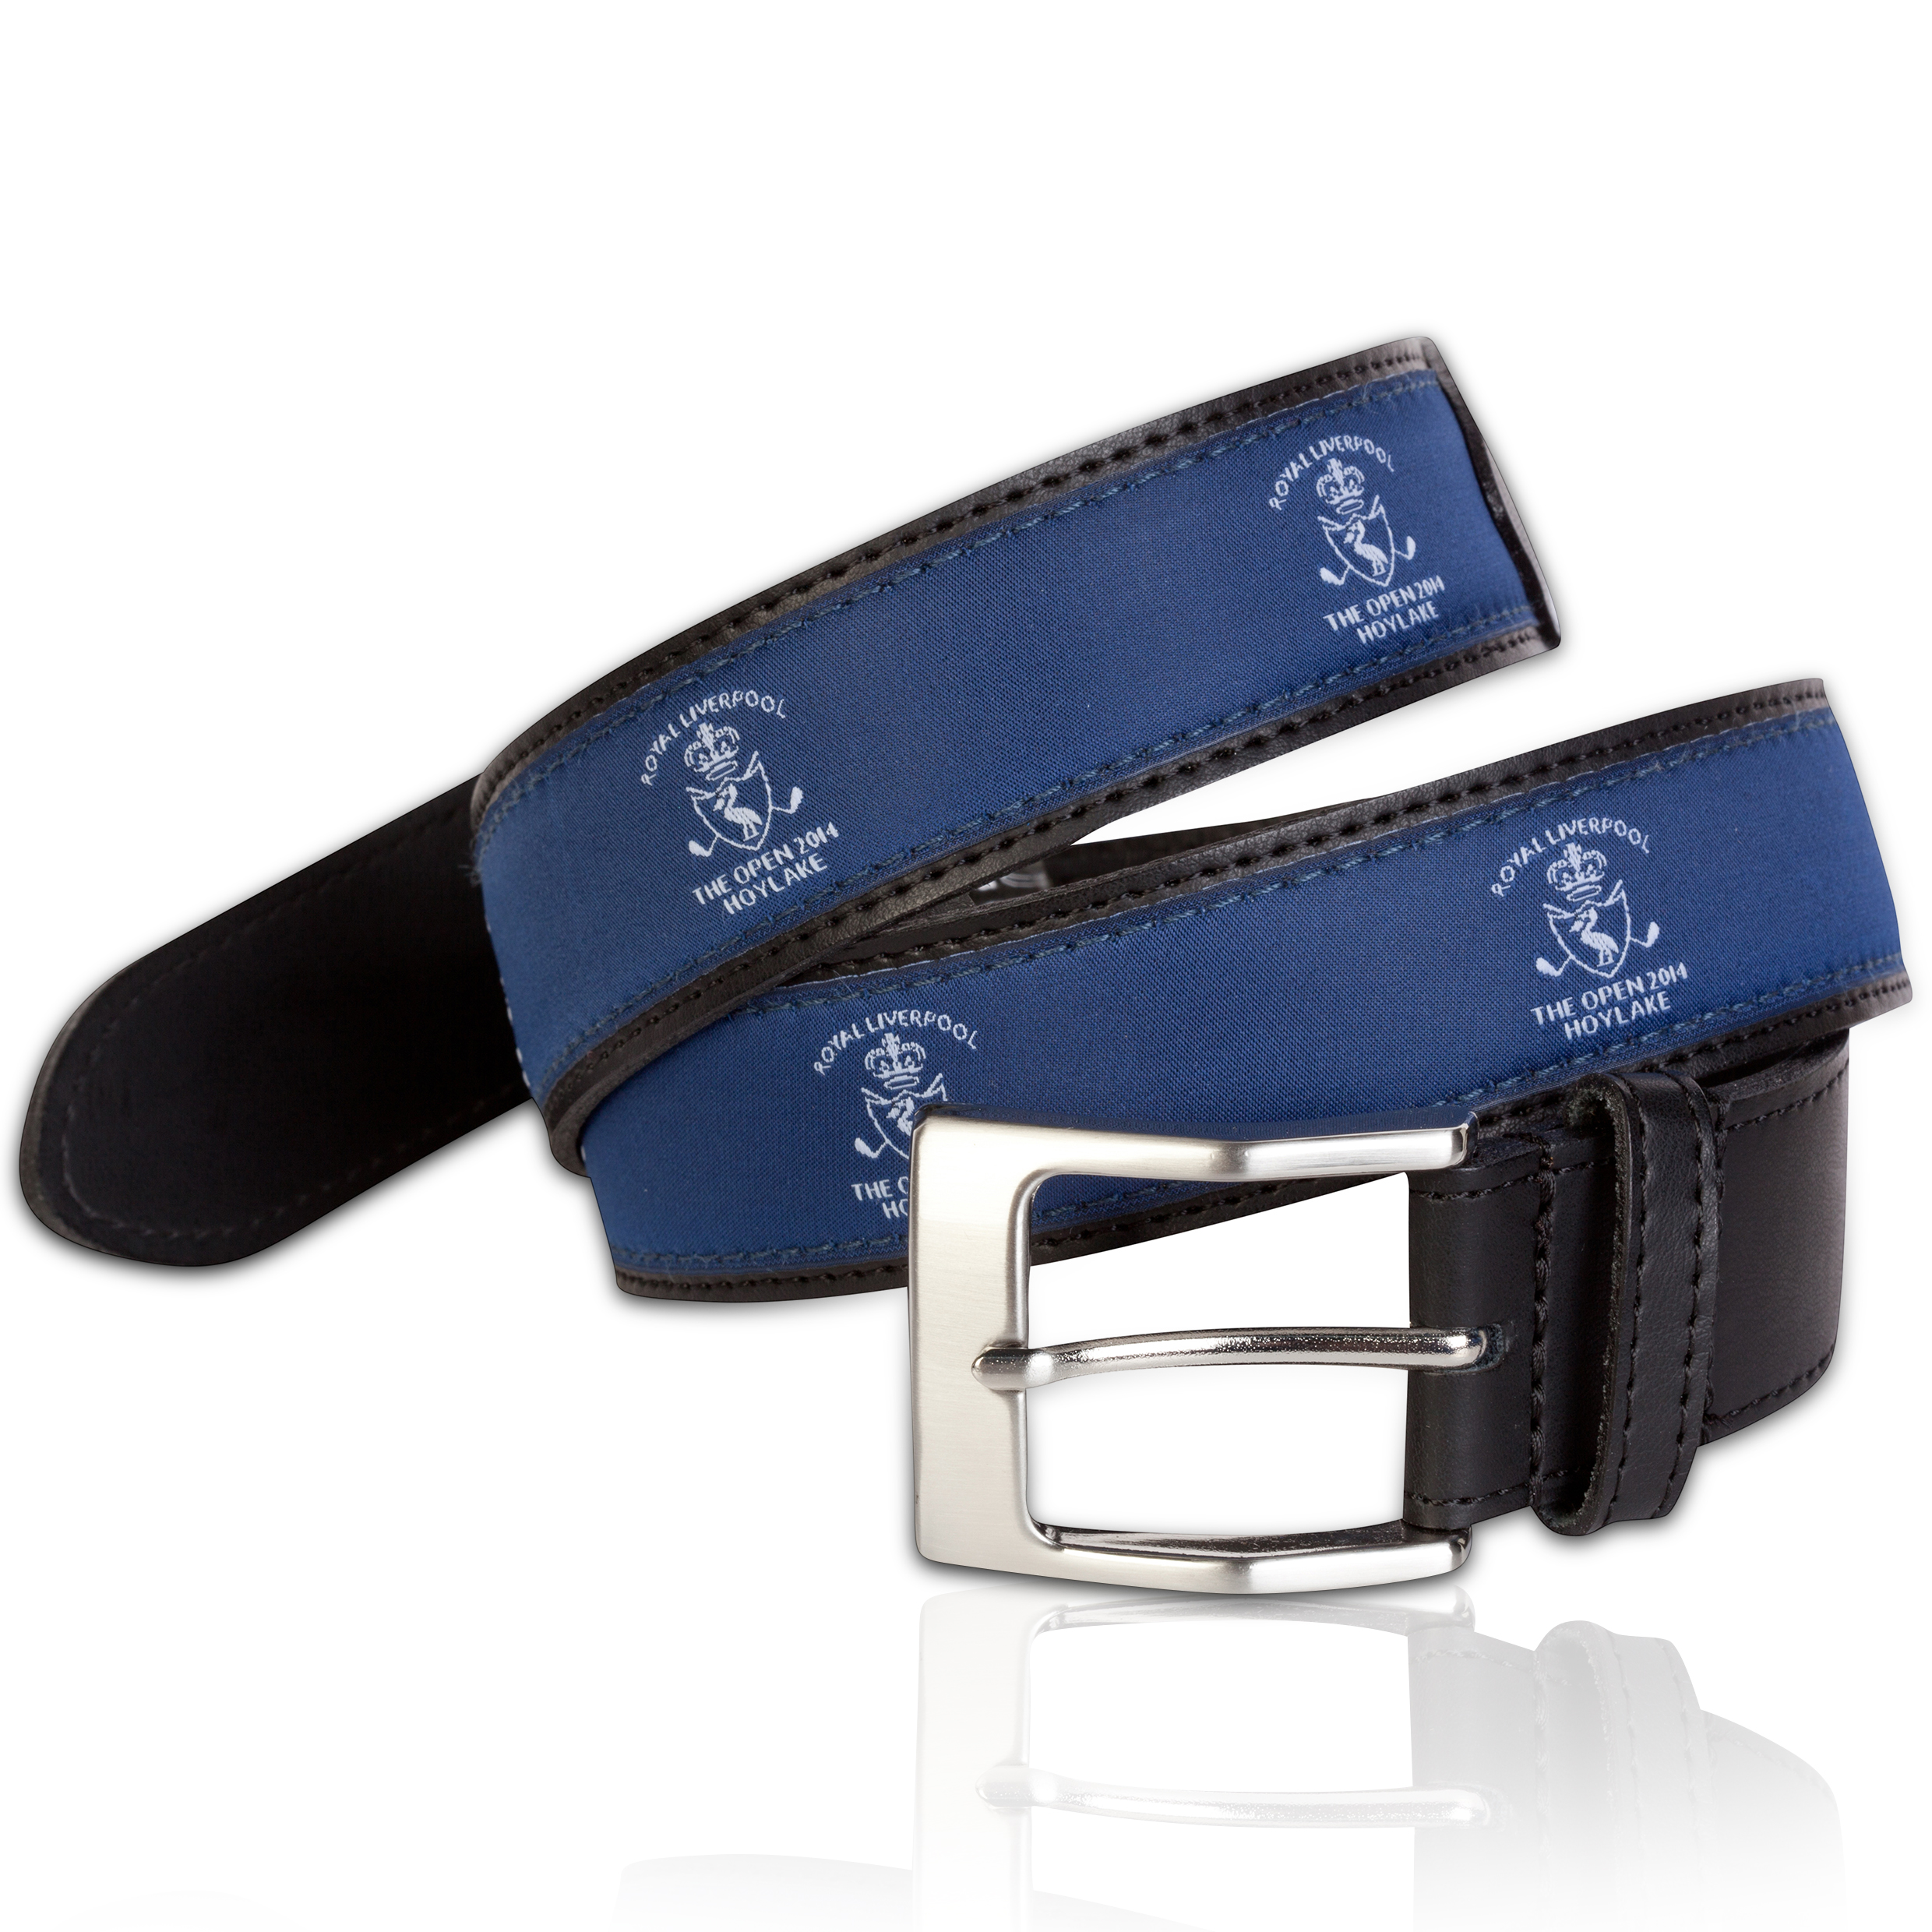 The Open Championship Royal Liverpool 2014 Venue Leather Belt Navy